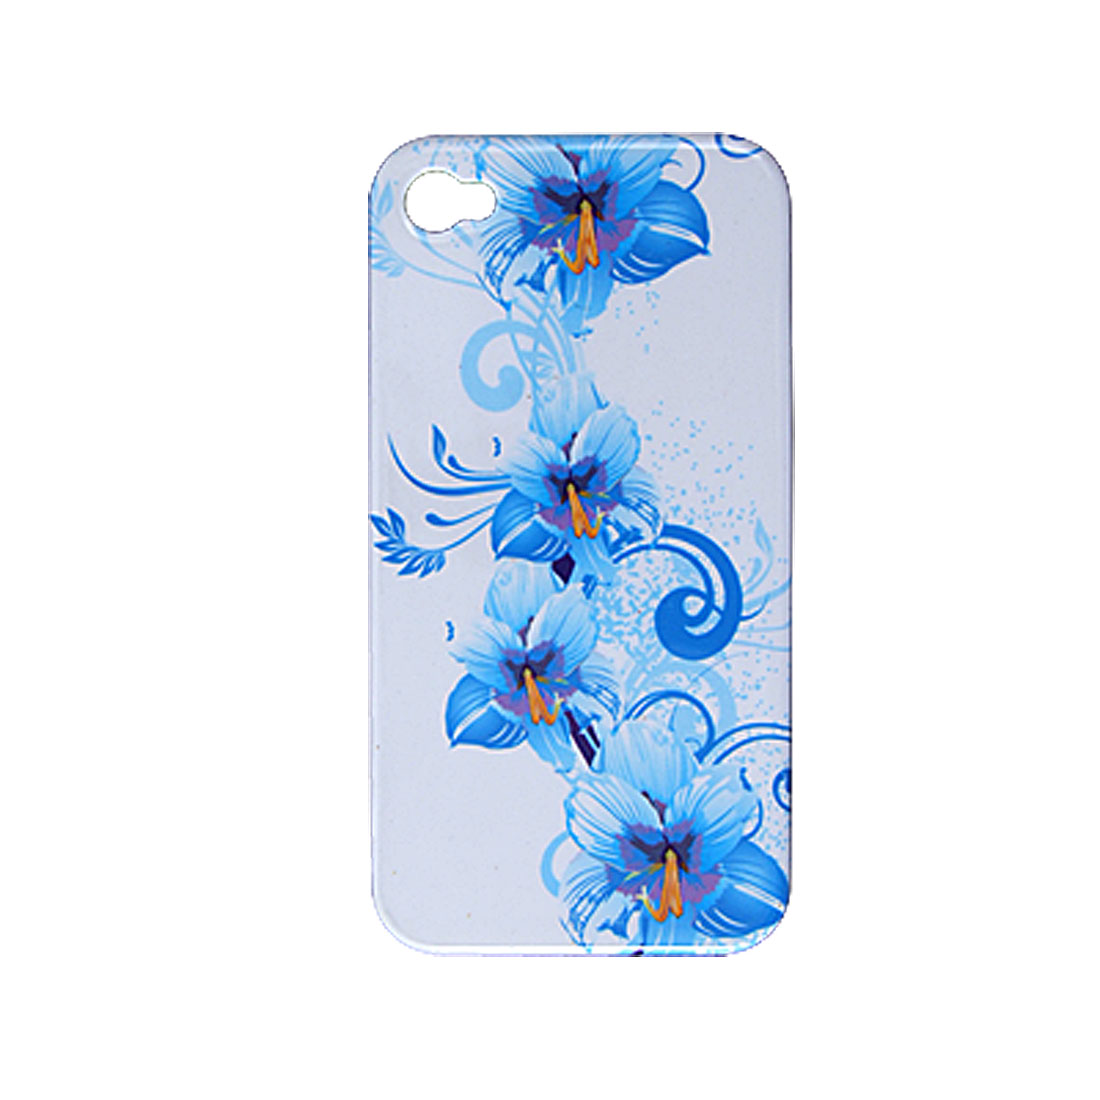 Protective Hard Plastic Case Flower Back Guard for iPhone 4 4G